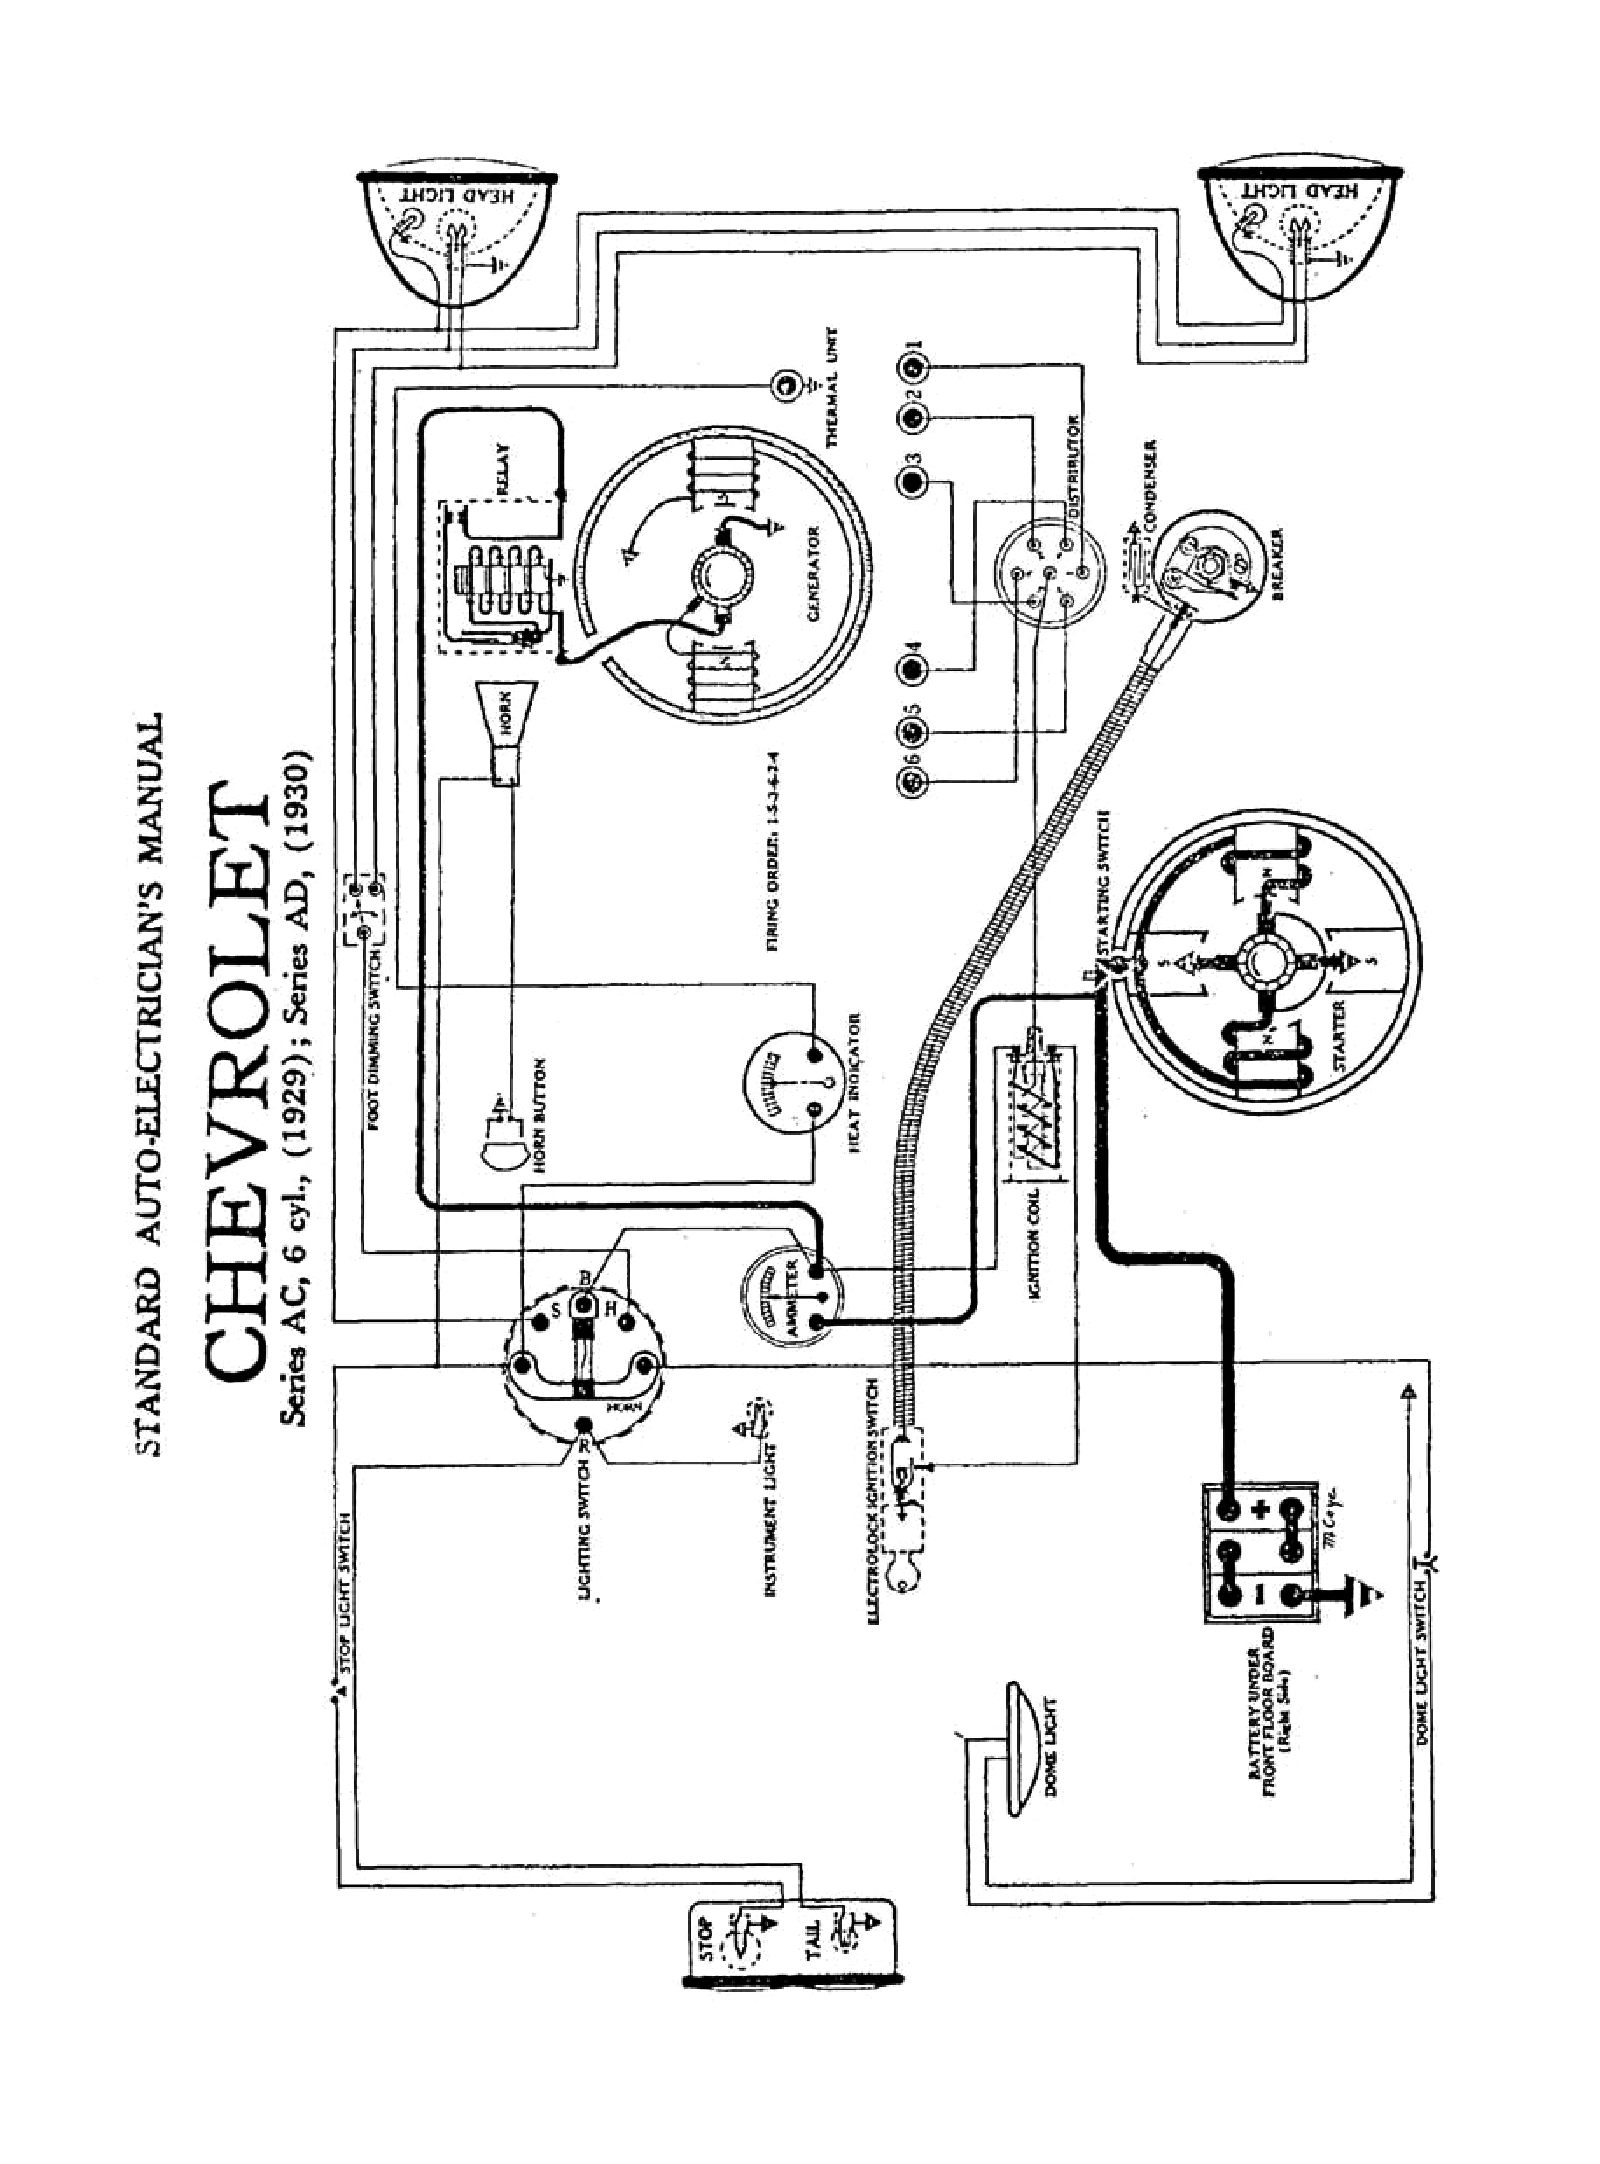 1960 Dodge D100 Wiring Harness Diagram Diy Diagrams 1970 1949 Chevrolet Wire Rh Linxglobal Co Ford F 250 Super Duty Truck